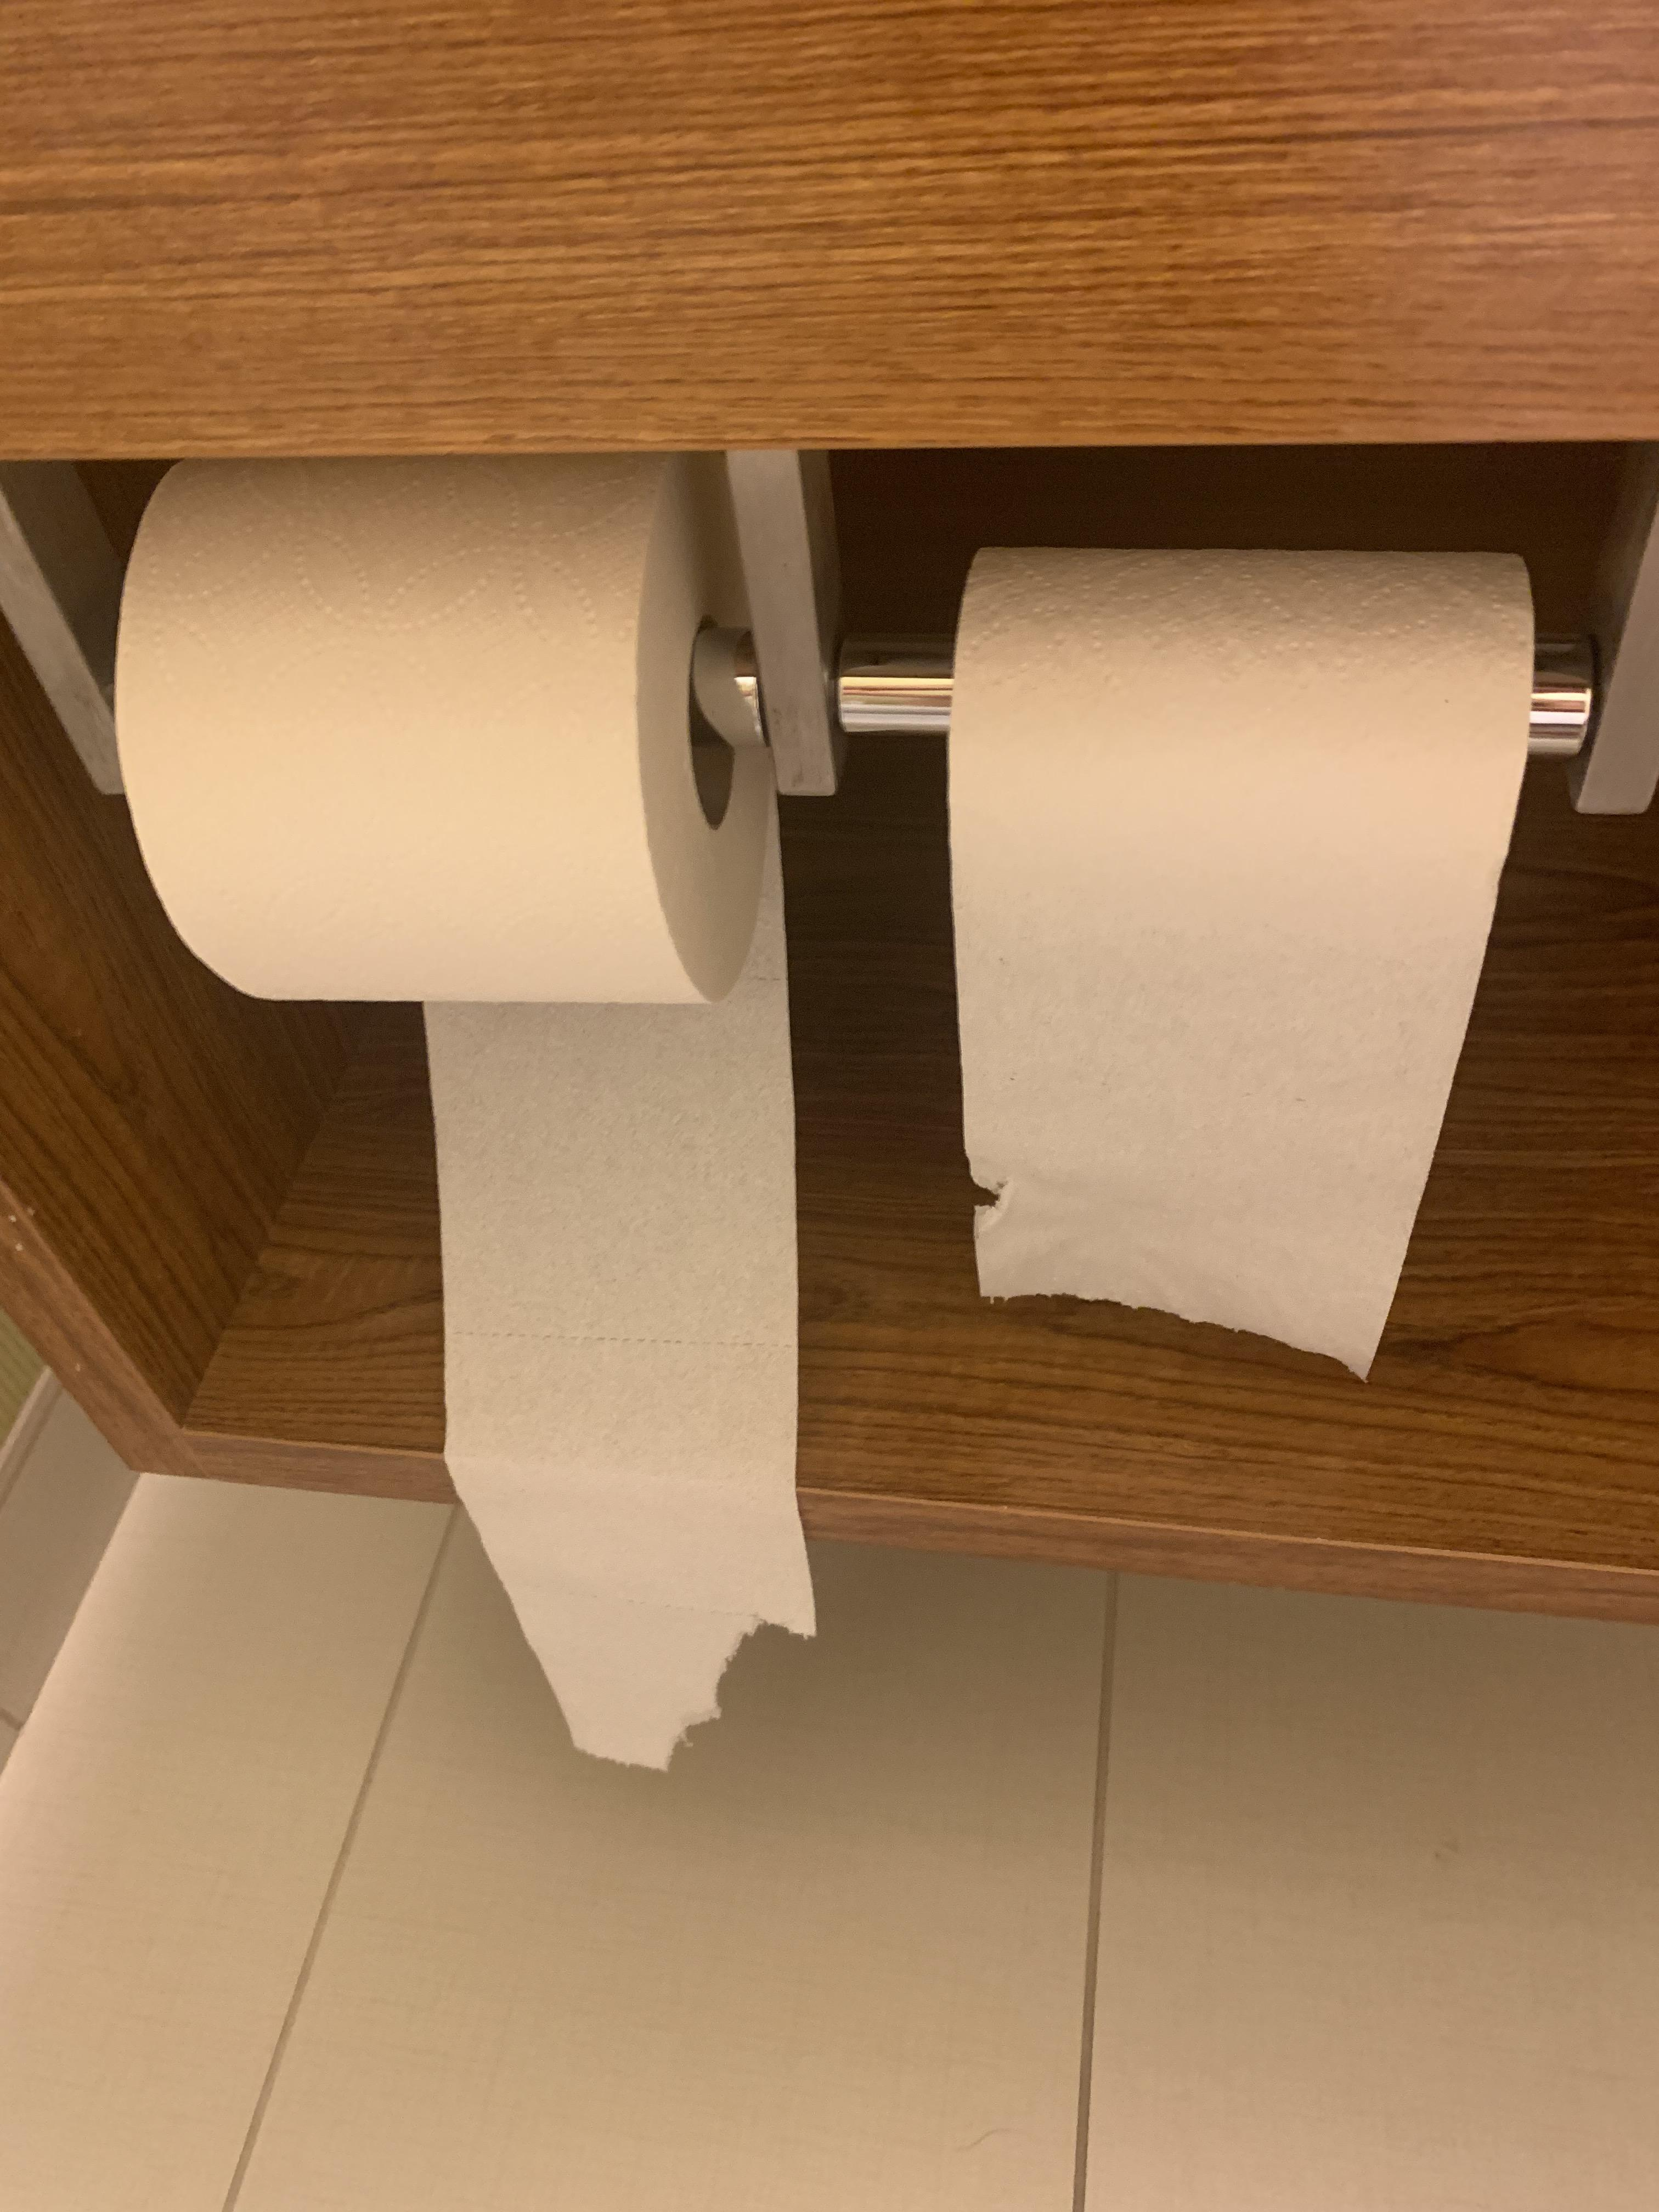 This Hotel Bathroom Toilet Paper Roll